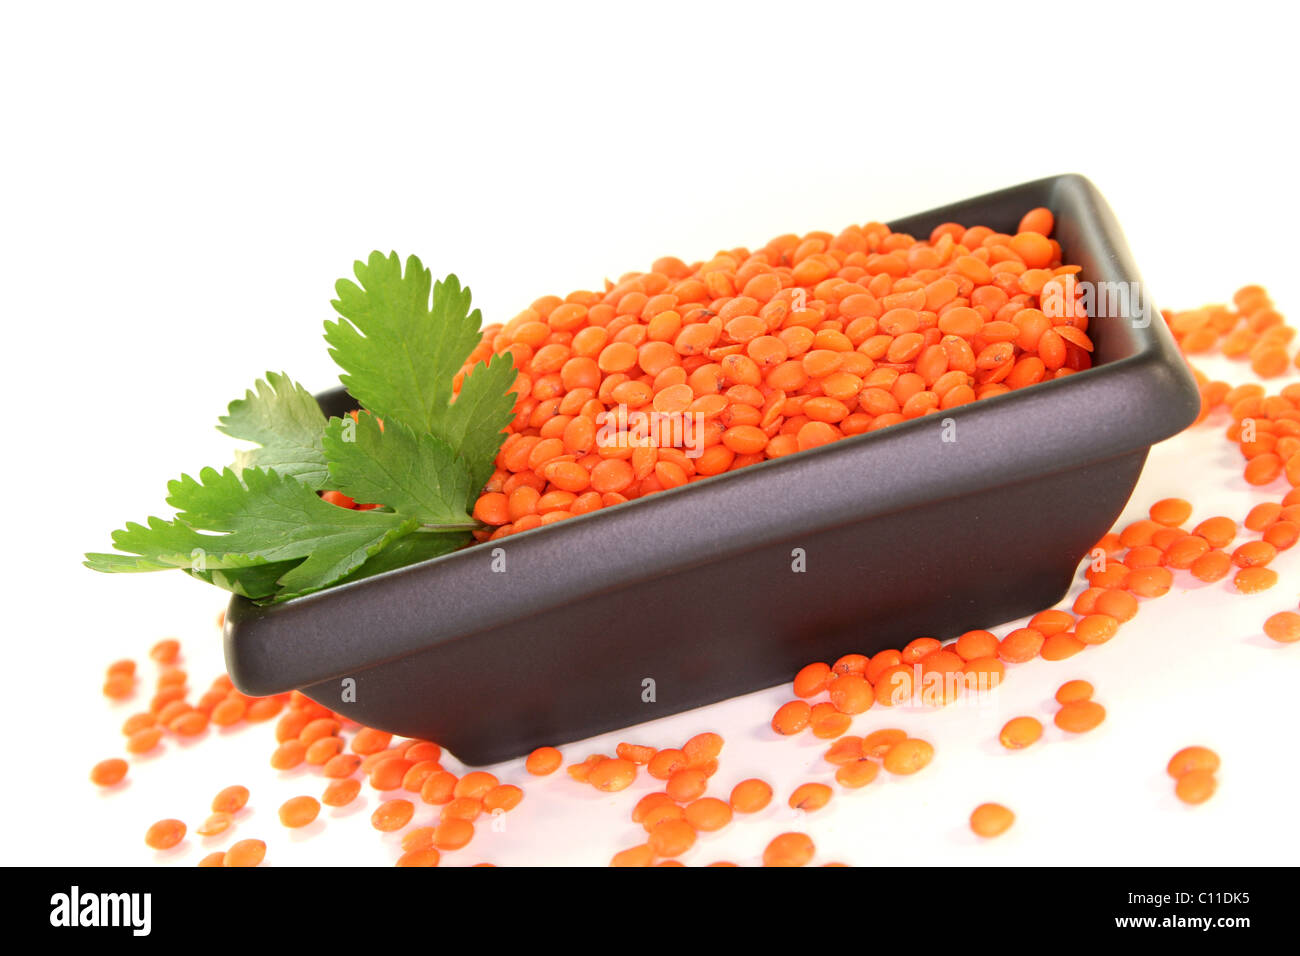 dried red lentils with coriander on a white background Stock Photo